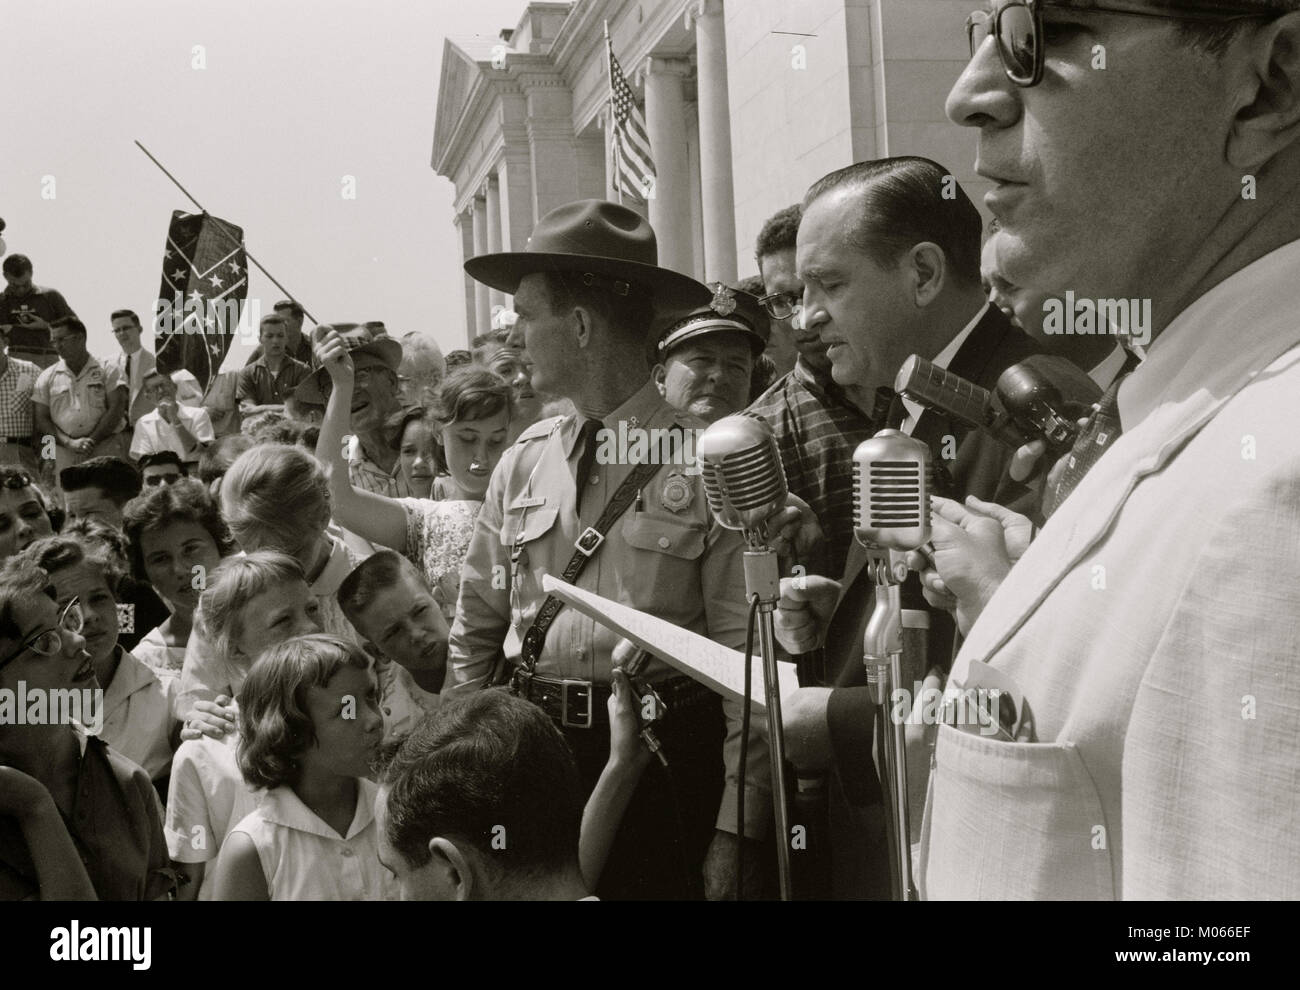 Little Rock, 1959. Rally at state capitol - Stock Image